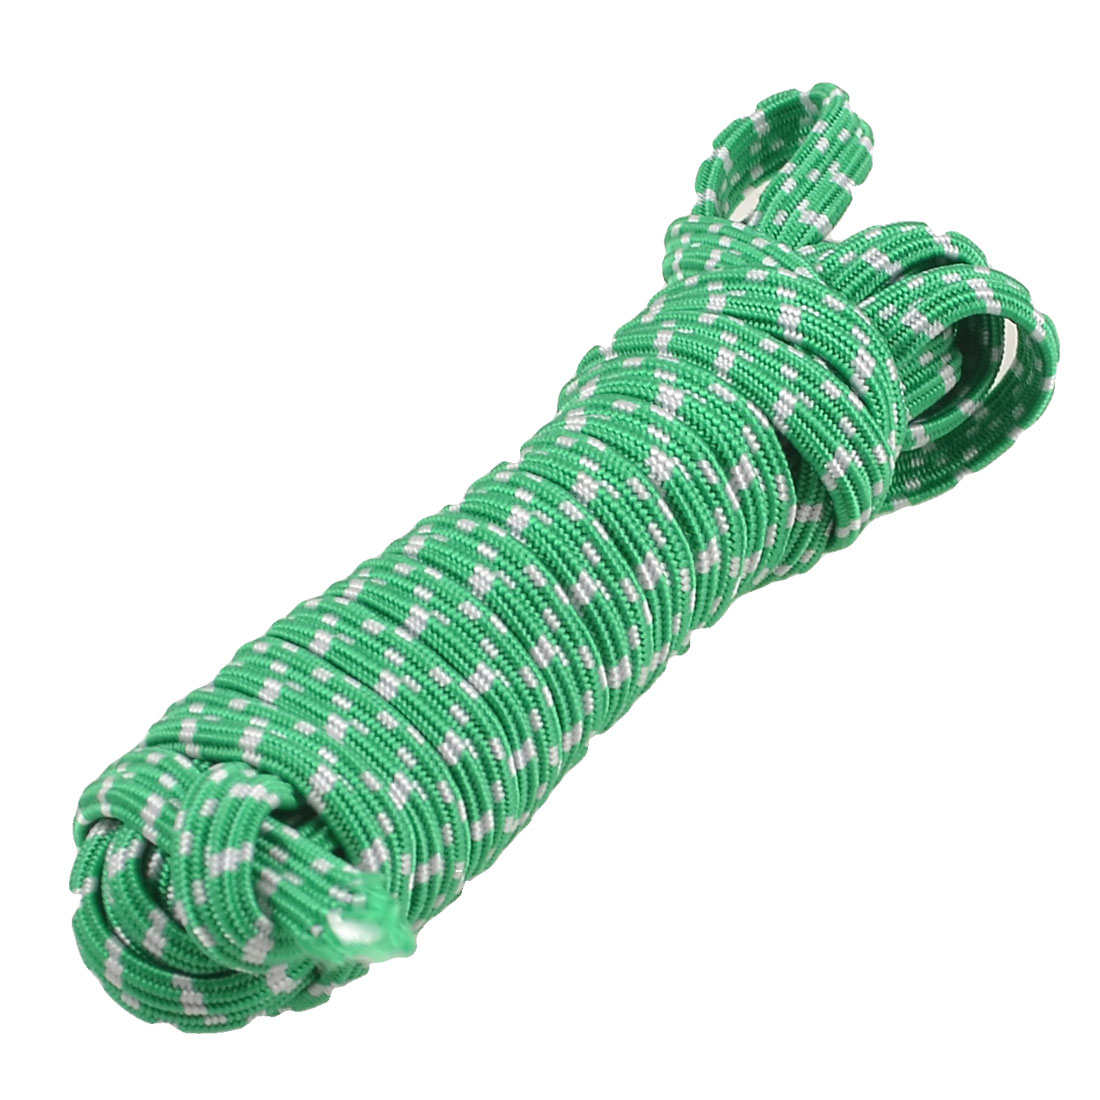 White Green Elastic Bands 3.1M 10.1Ft Length for Trousers